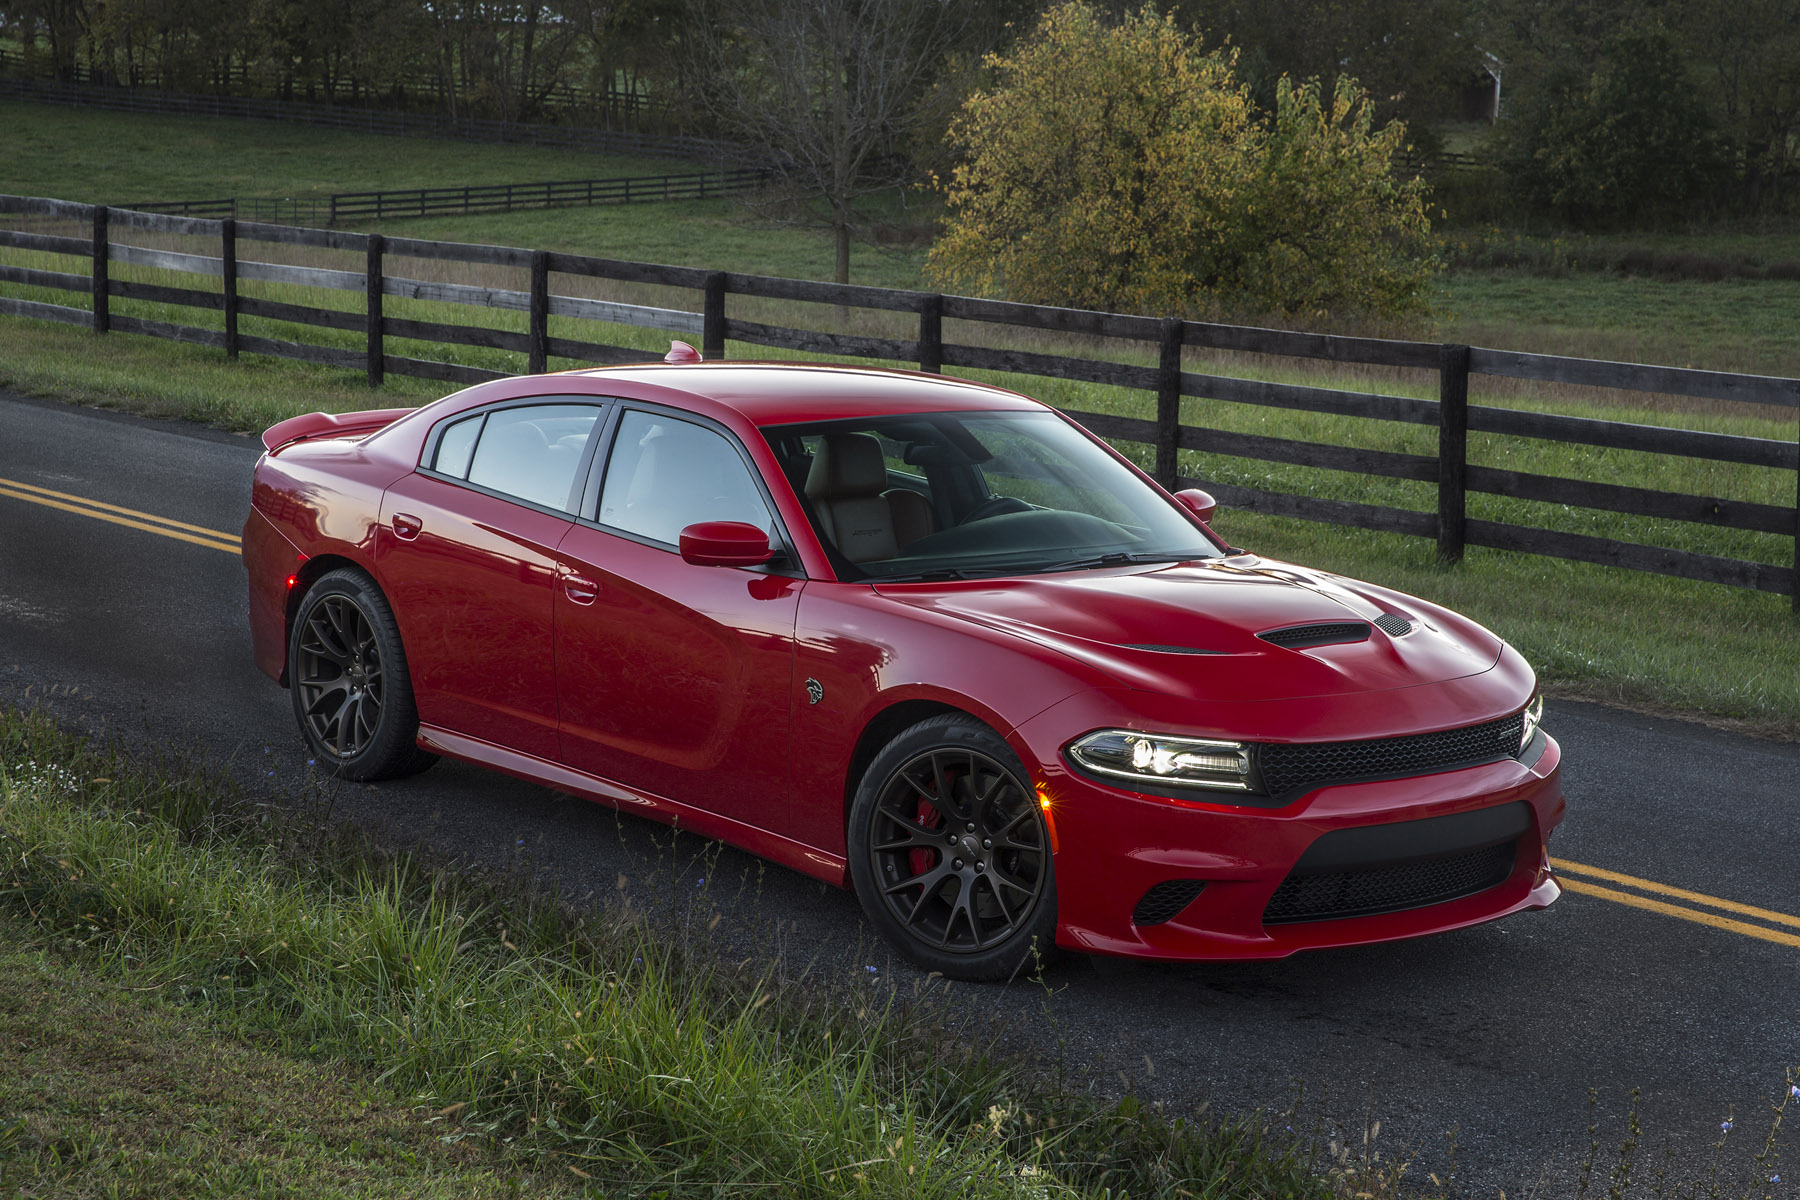 Drifting Hellcat Driver Crashes Into Restored Chevy Biscayne Reportedly Arrested On Dui Suspicion 100415 besides Watch likewise Watch as well 172635382398 furthermore Dodge Charger Hellcat Owner Installs Police Grade Bull Bar Goes Drag Racing 114020. on 2015 dodge charger srt8 392